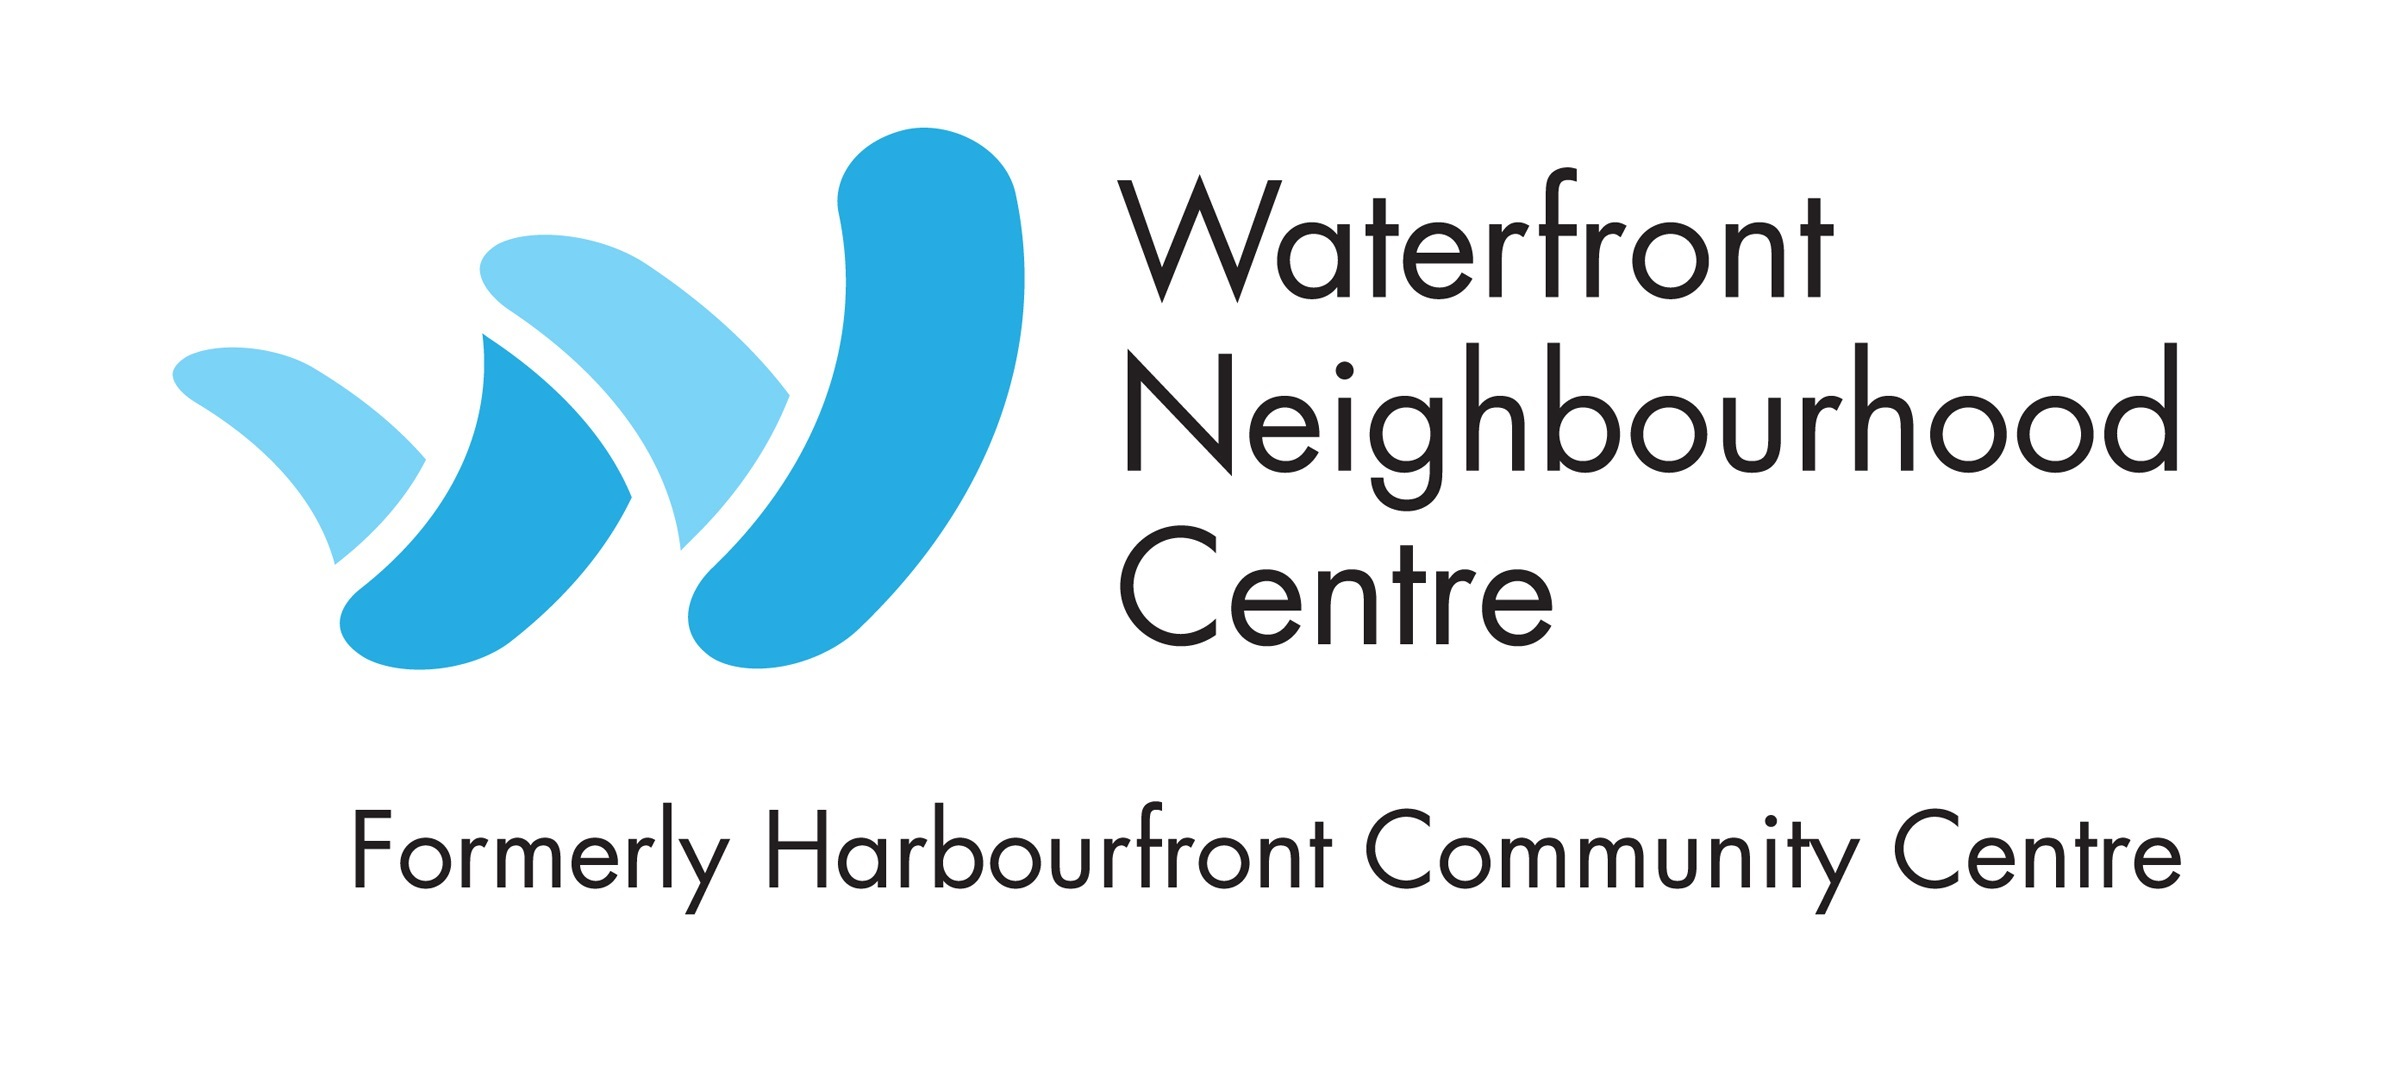 Waterfront Neighbourhood Centre